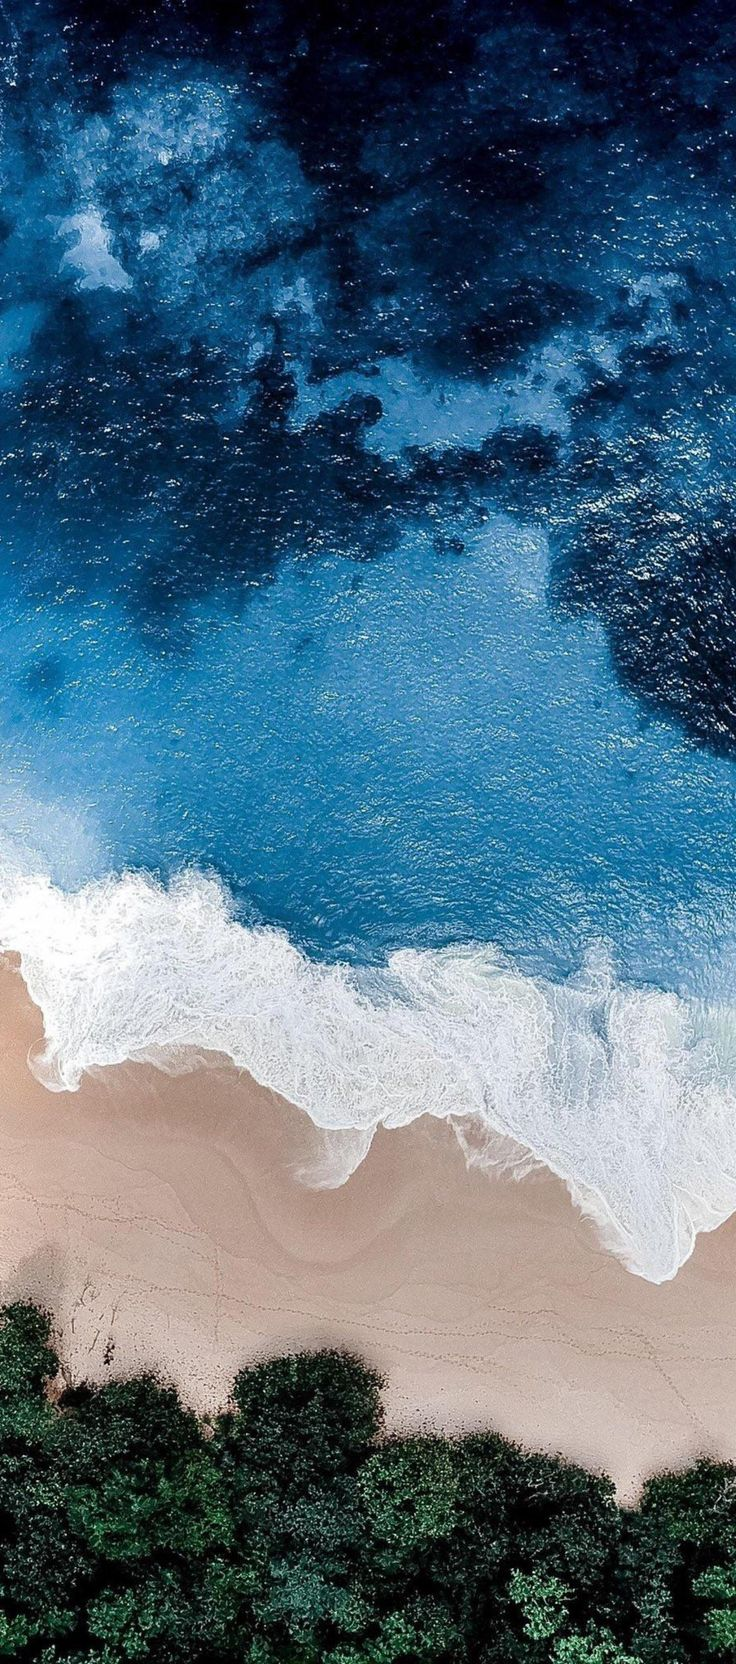 iOS 11, iPhone X, Aqua, blue, Water, beach, wave, ocean, apple, wallpaper, iphone 8, clean, beauty, colour, iOS, minimal